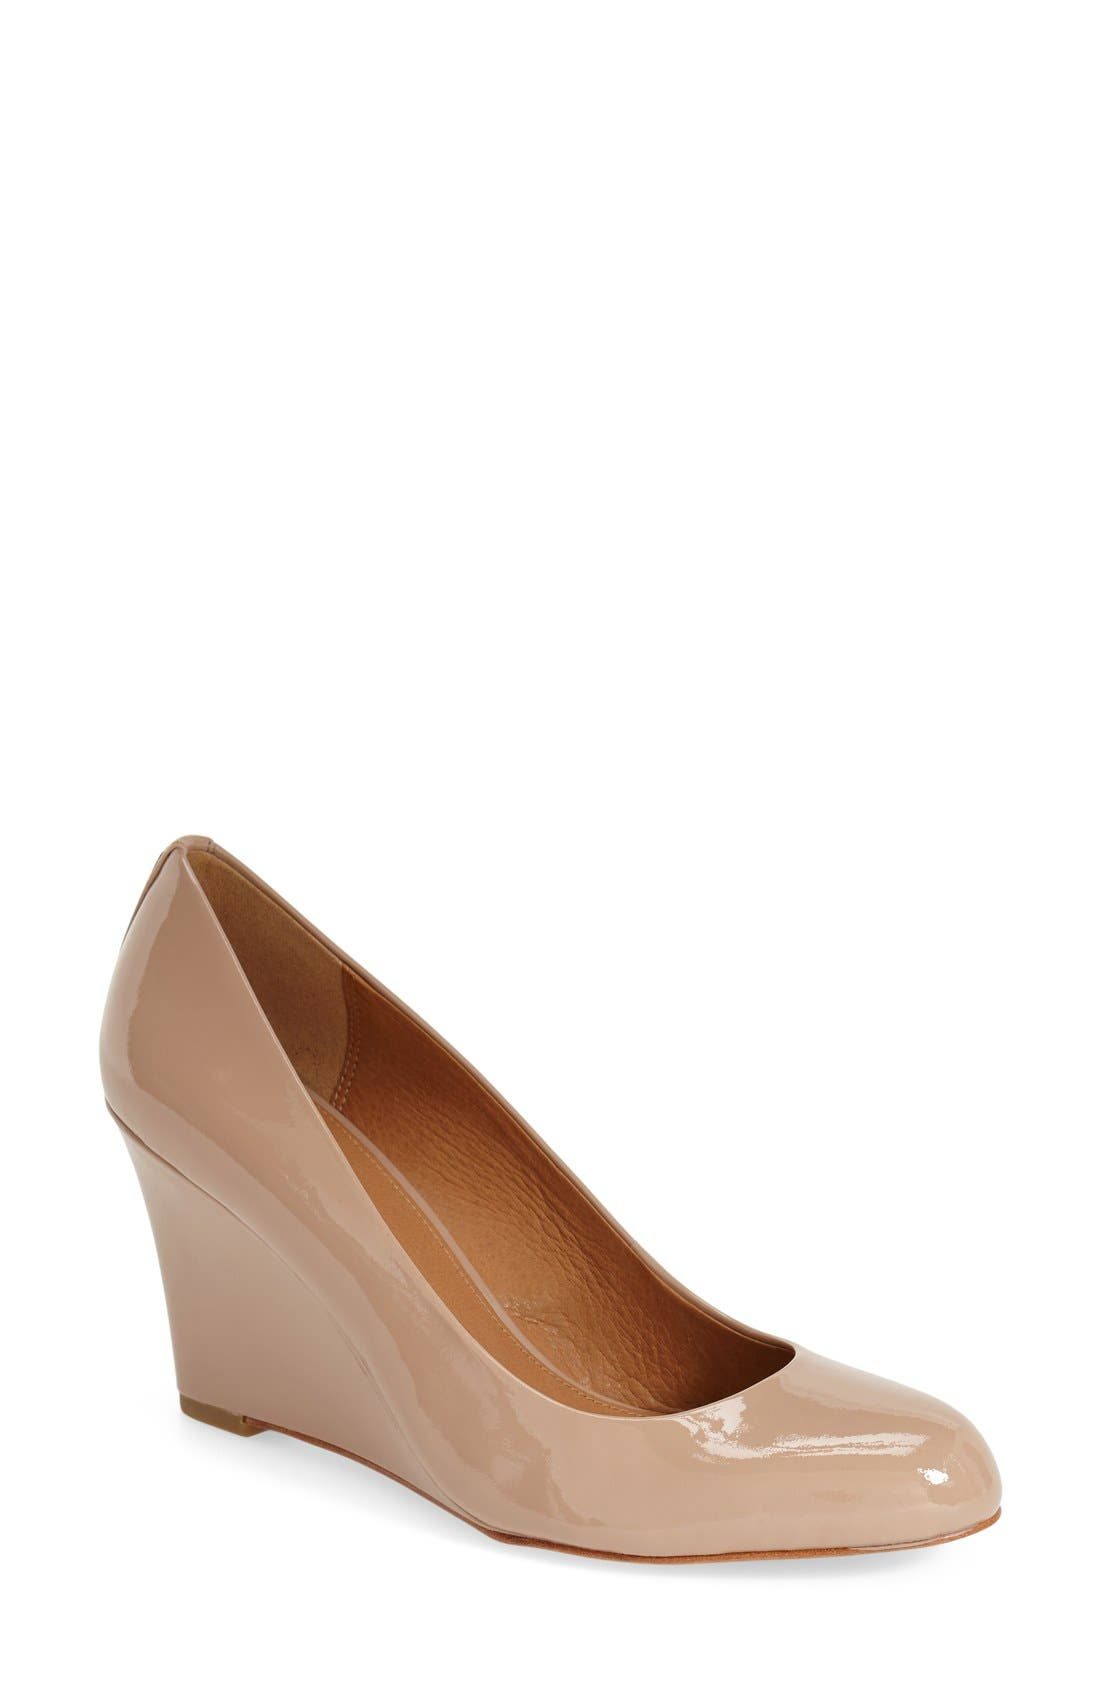 Alternate Image 1 Selected - COACH 'Rileigh' Wedge Pump (Women)